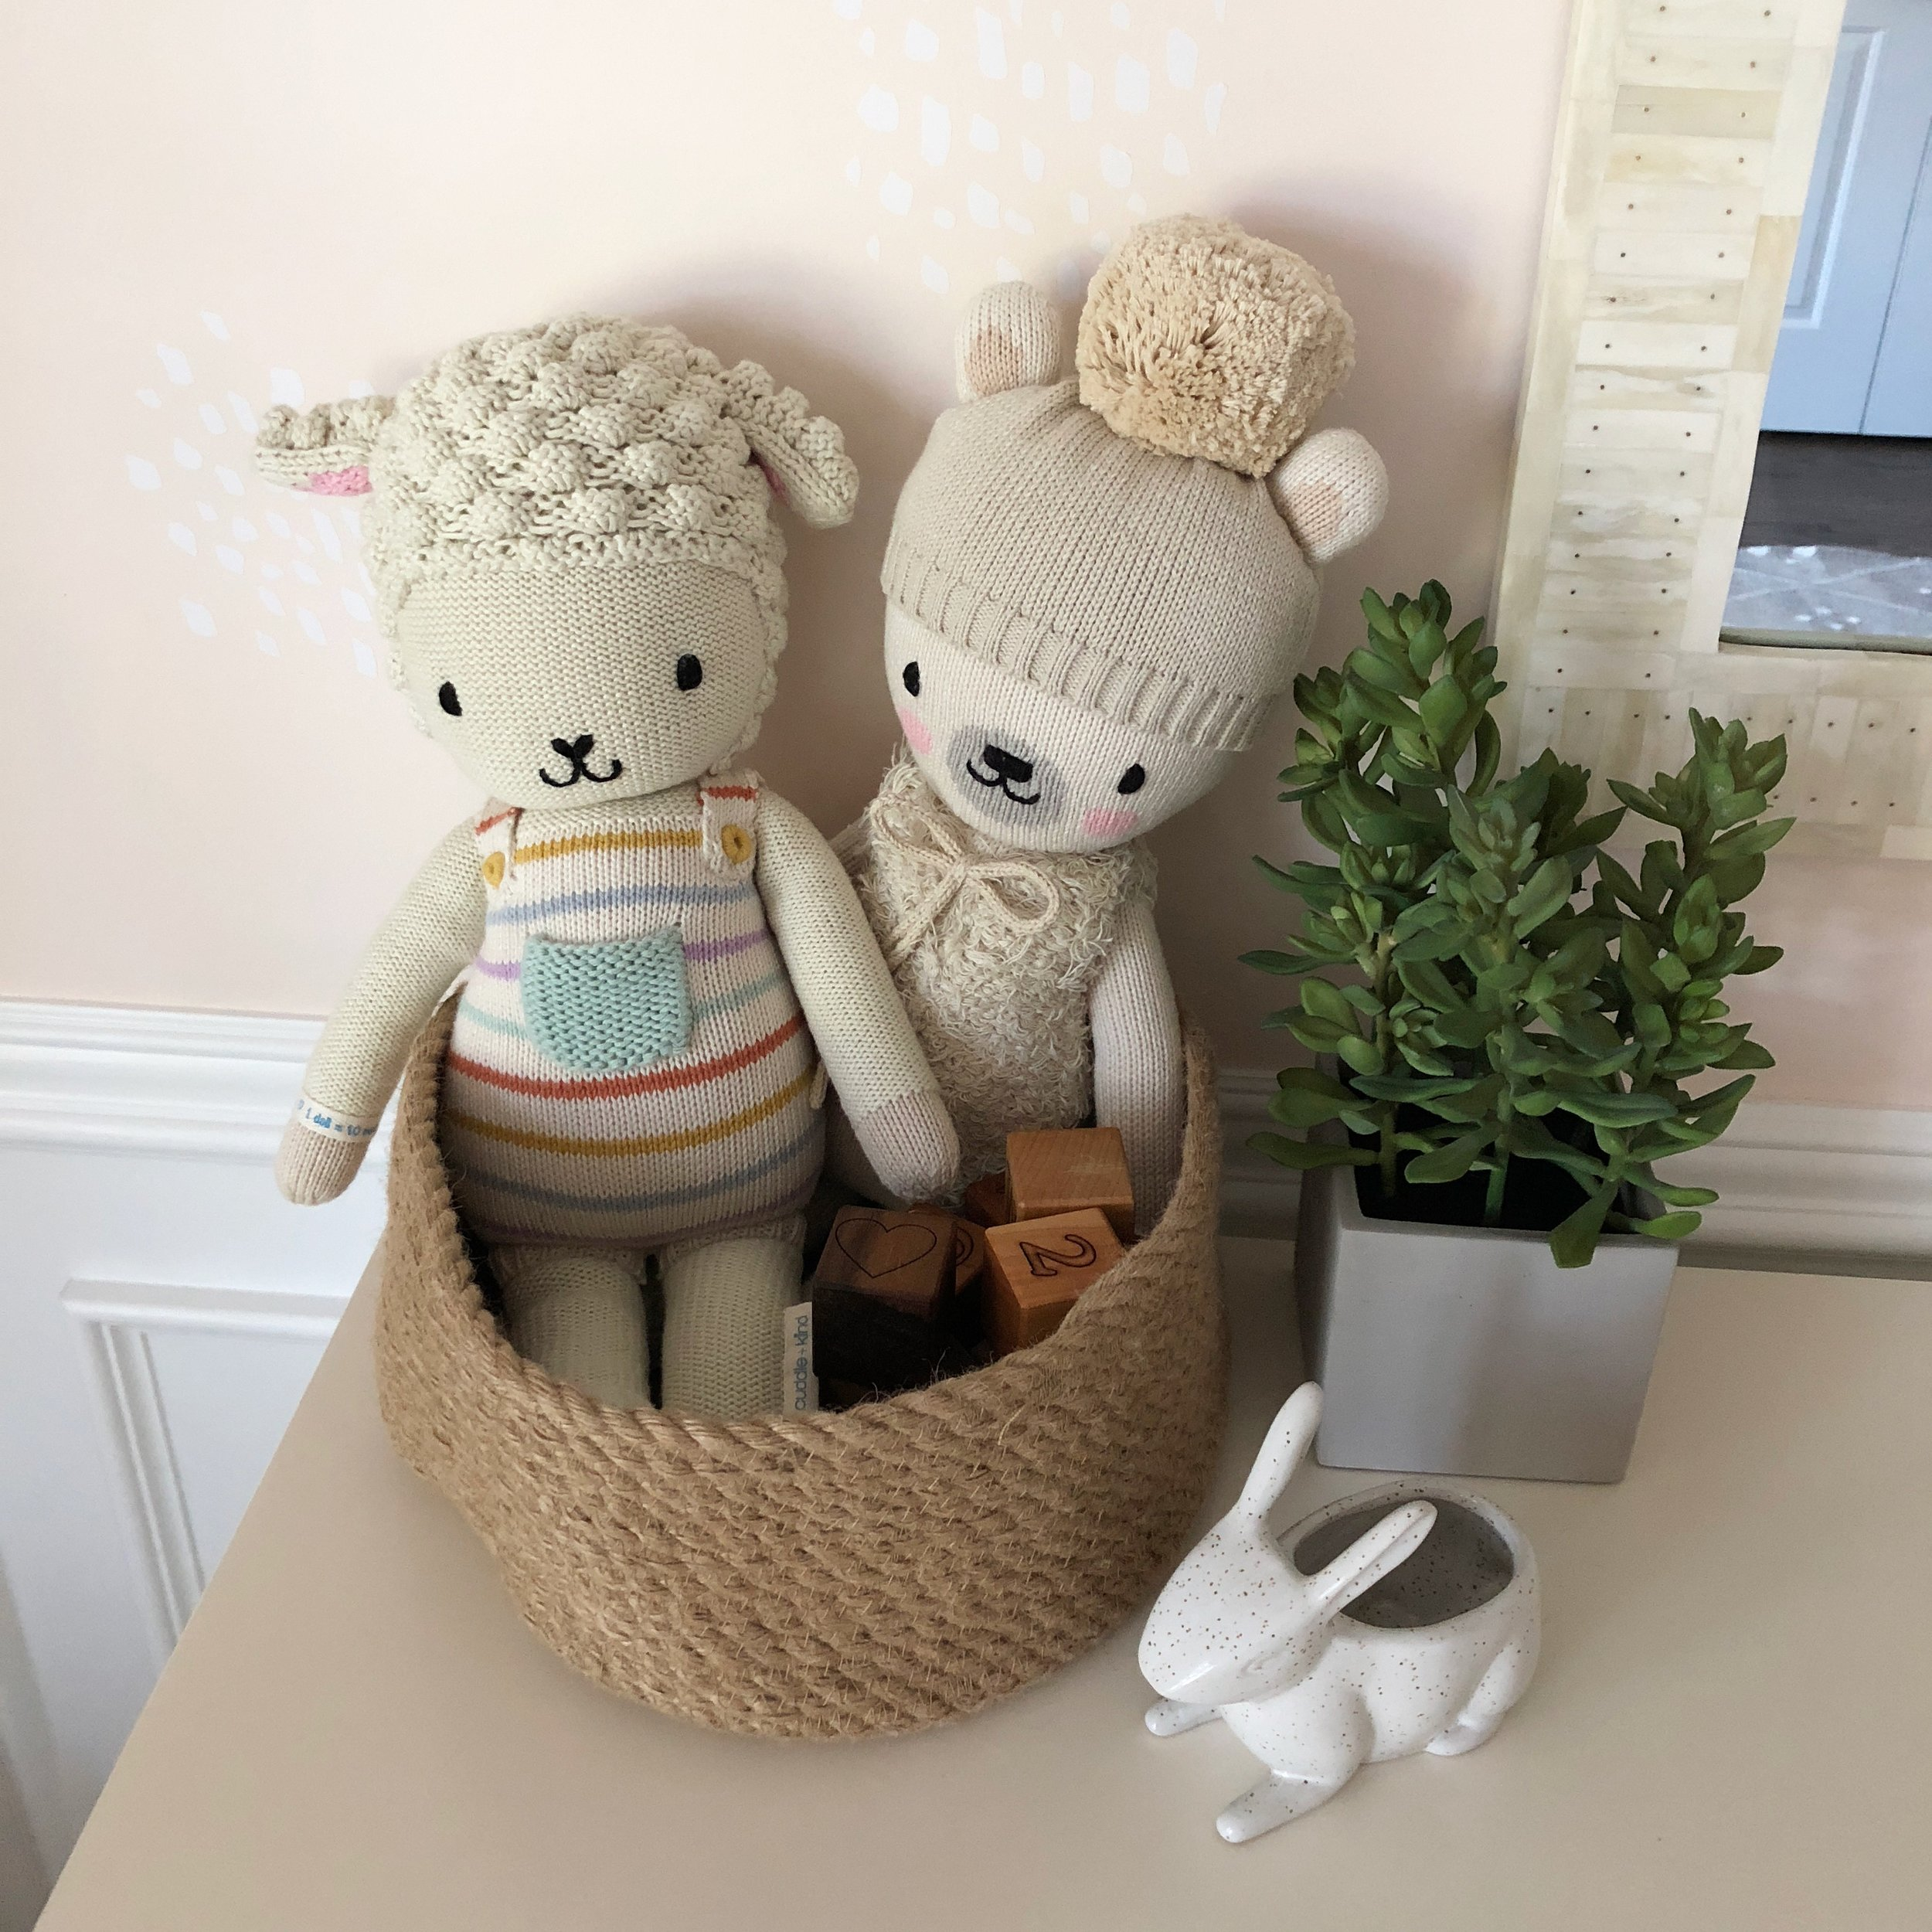 Close-up of the baby's Cuddle + Kind collection <3